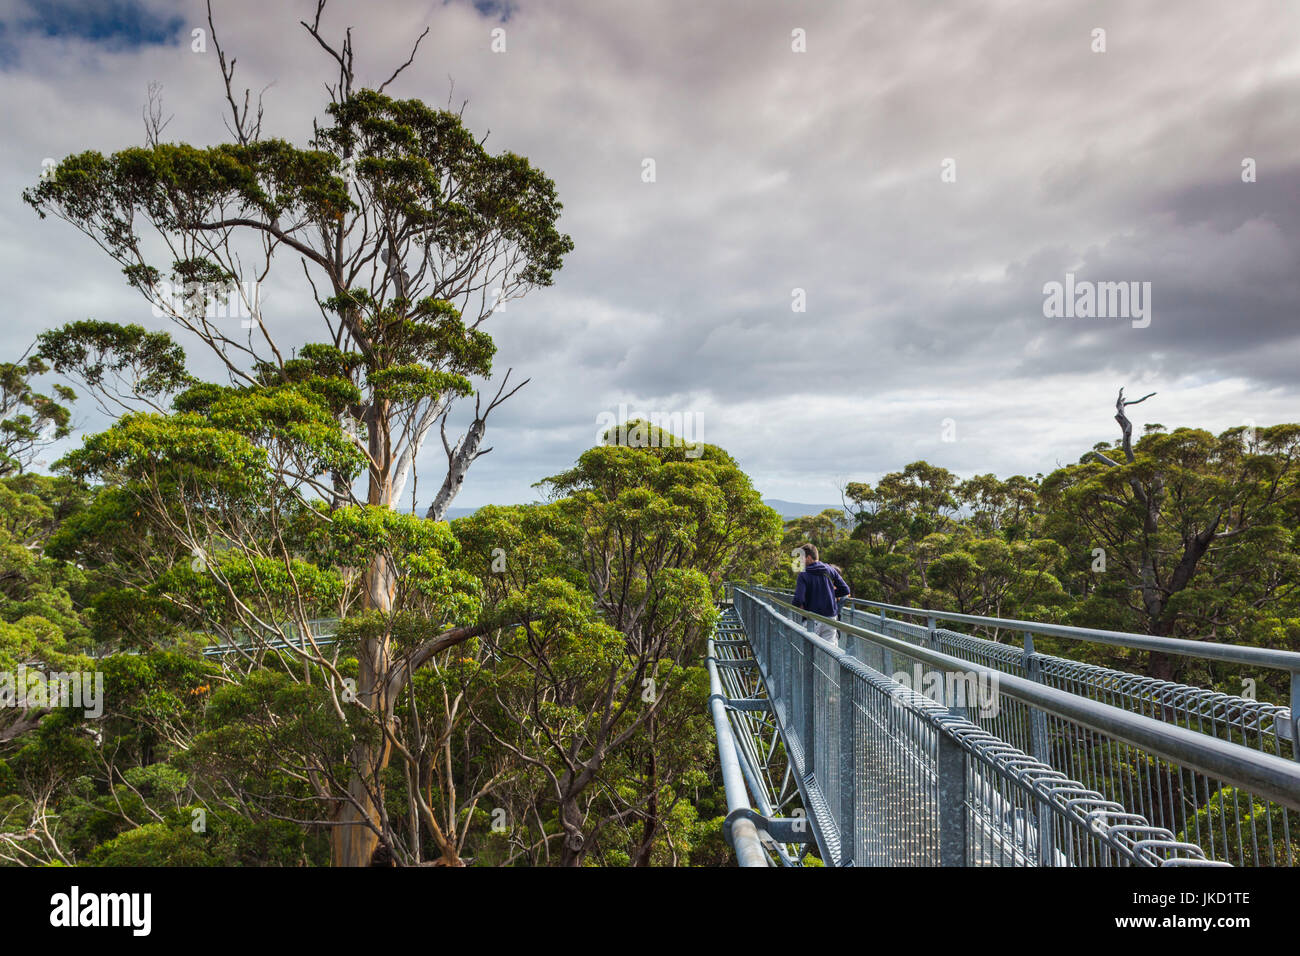 Australia, Western Australia, The Southwest, Walpole-Nornalup, Valley of the Giants Tree Top Walk, walkway above - Stock Image